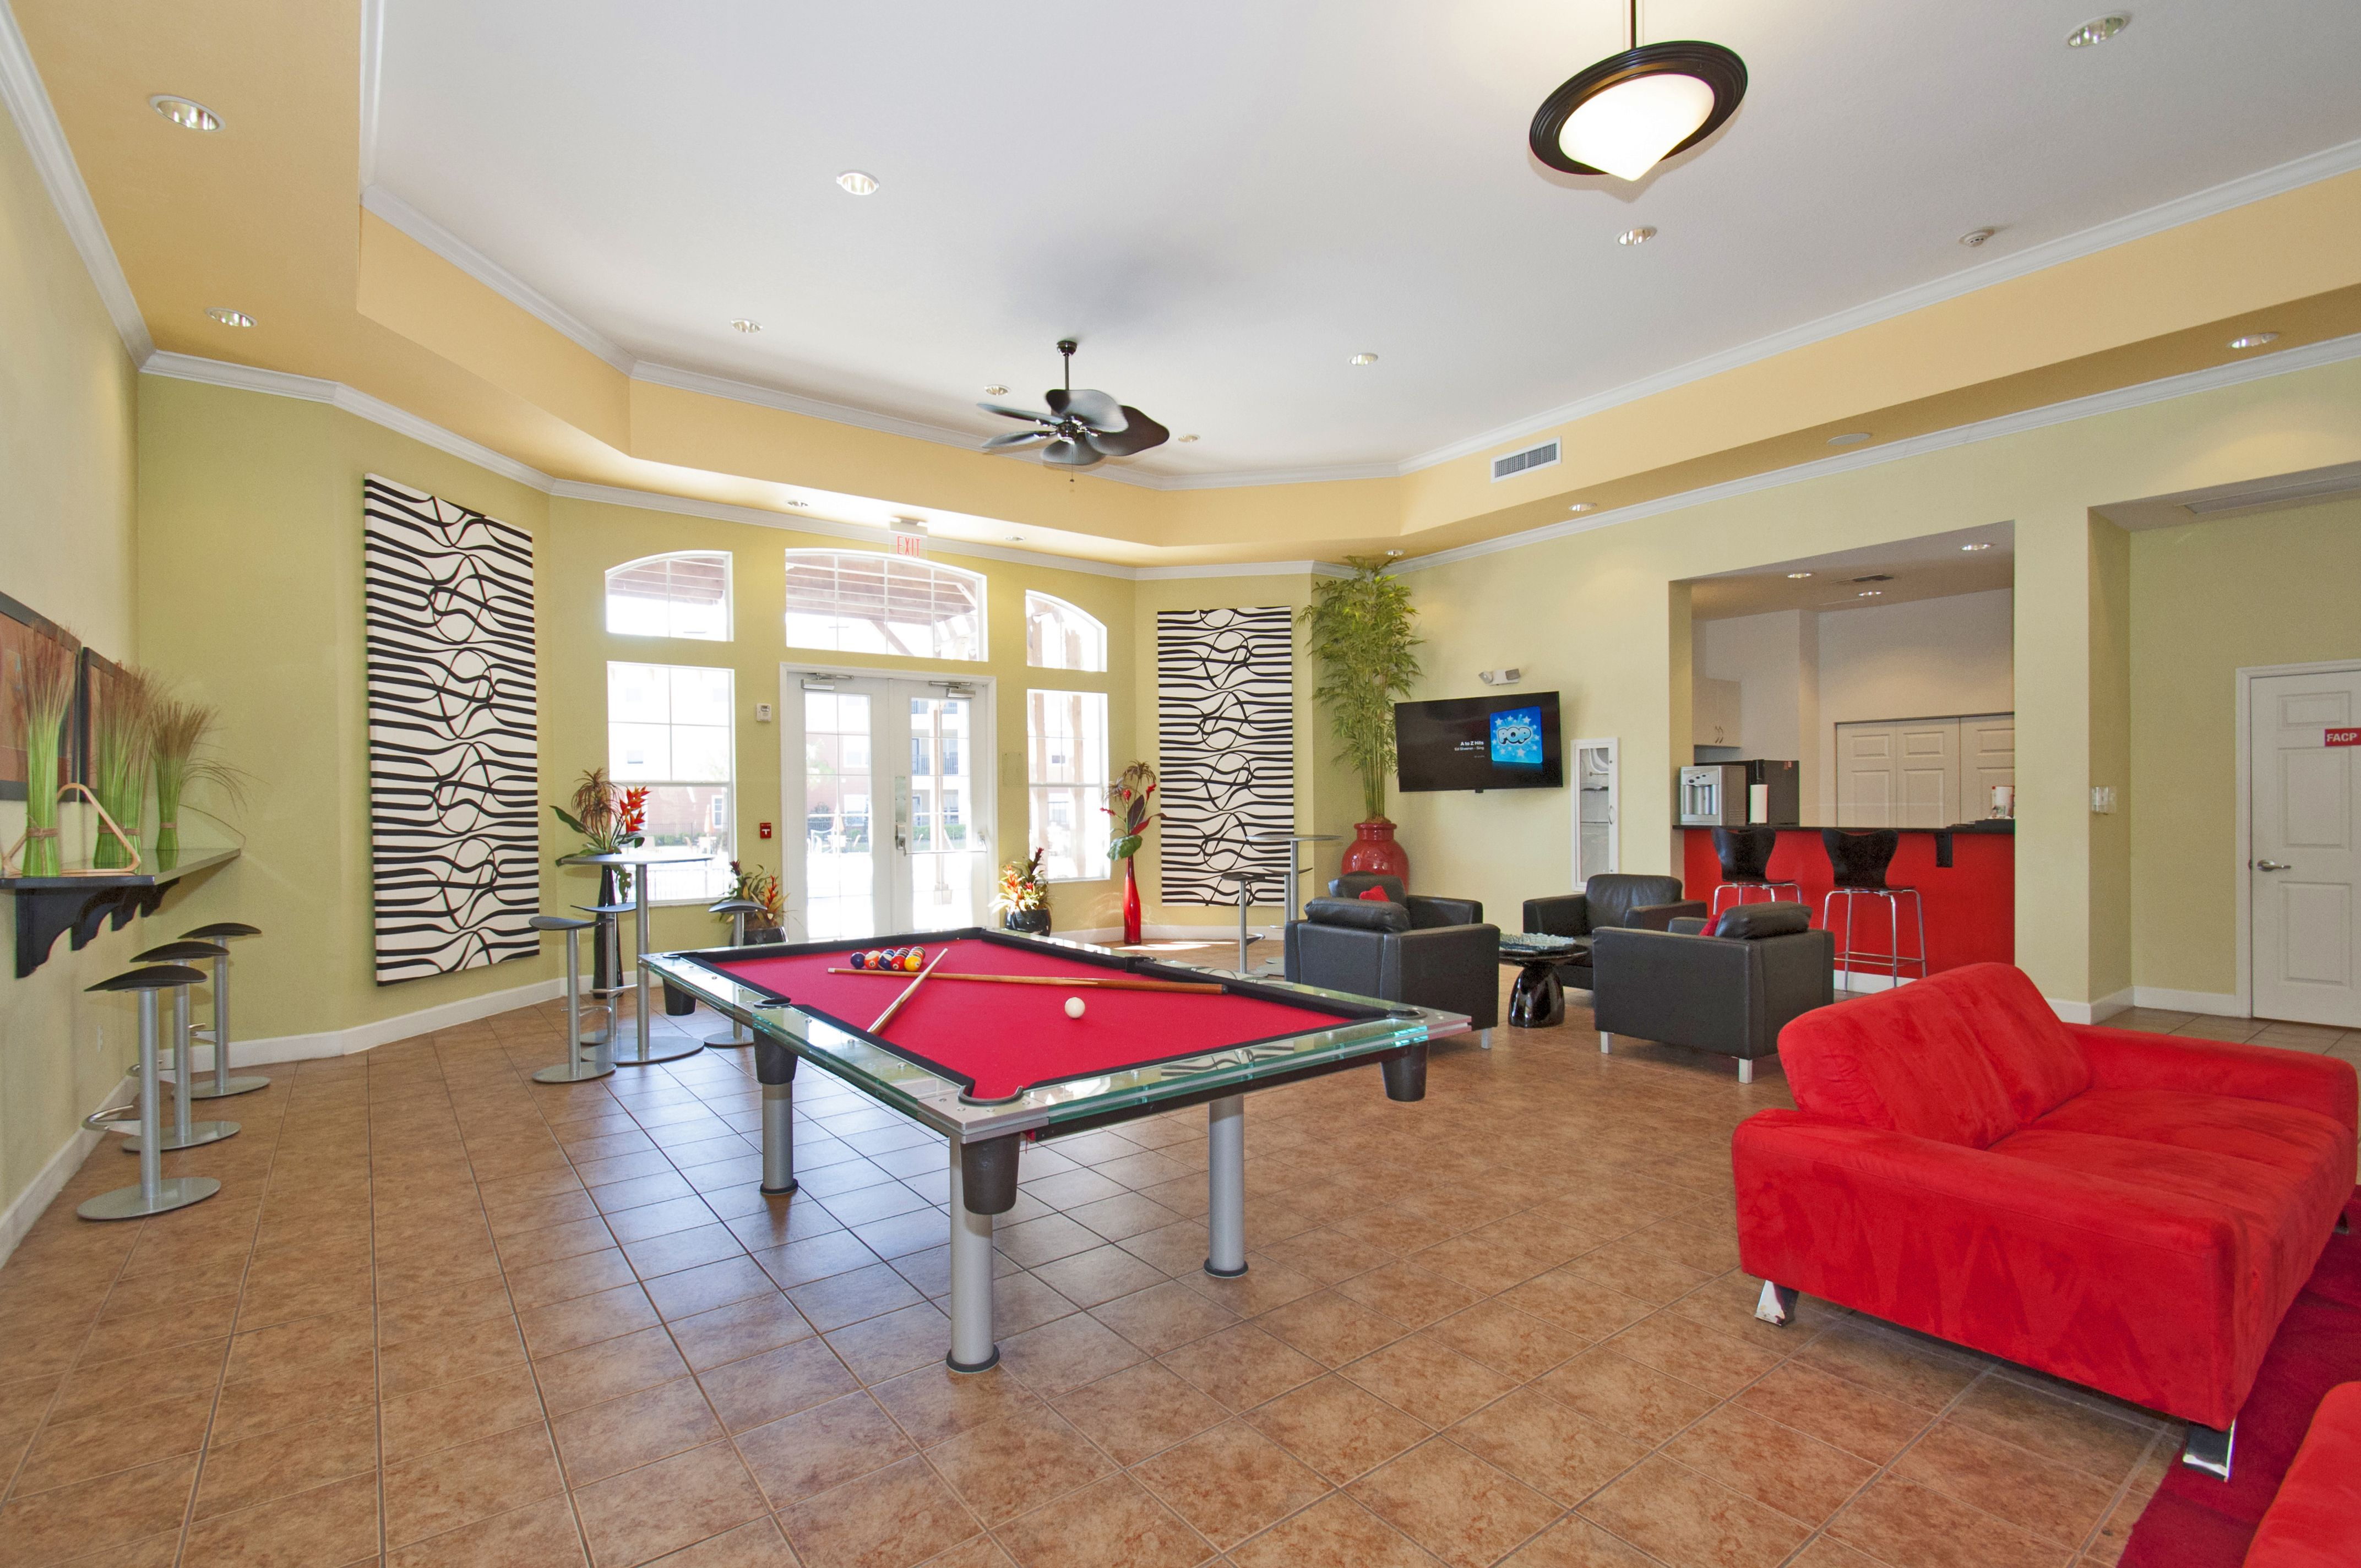 Clubhouse At The Enclave Apartments Enclave Apartments Apartment Apartments For Rent